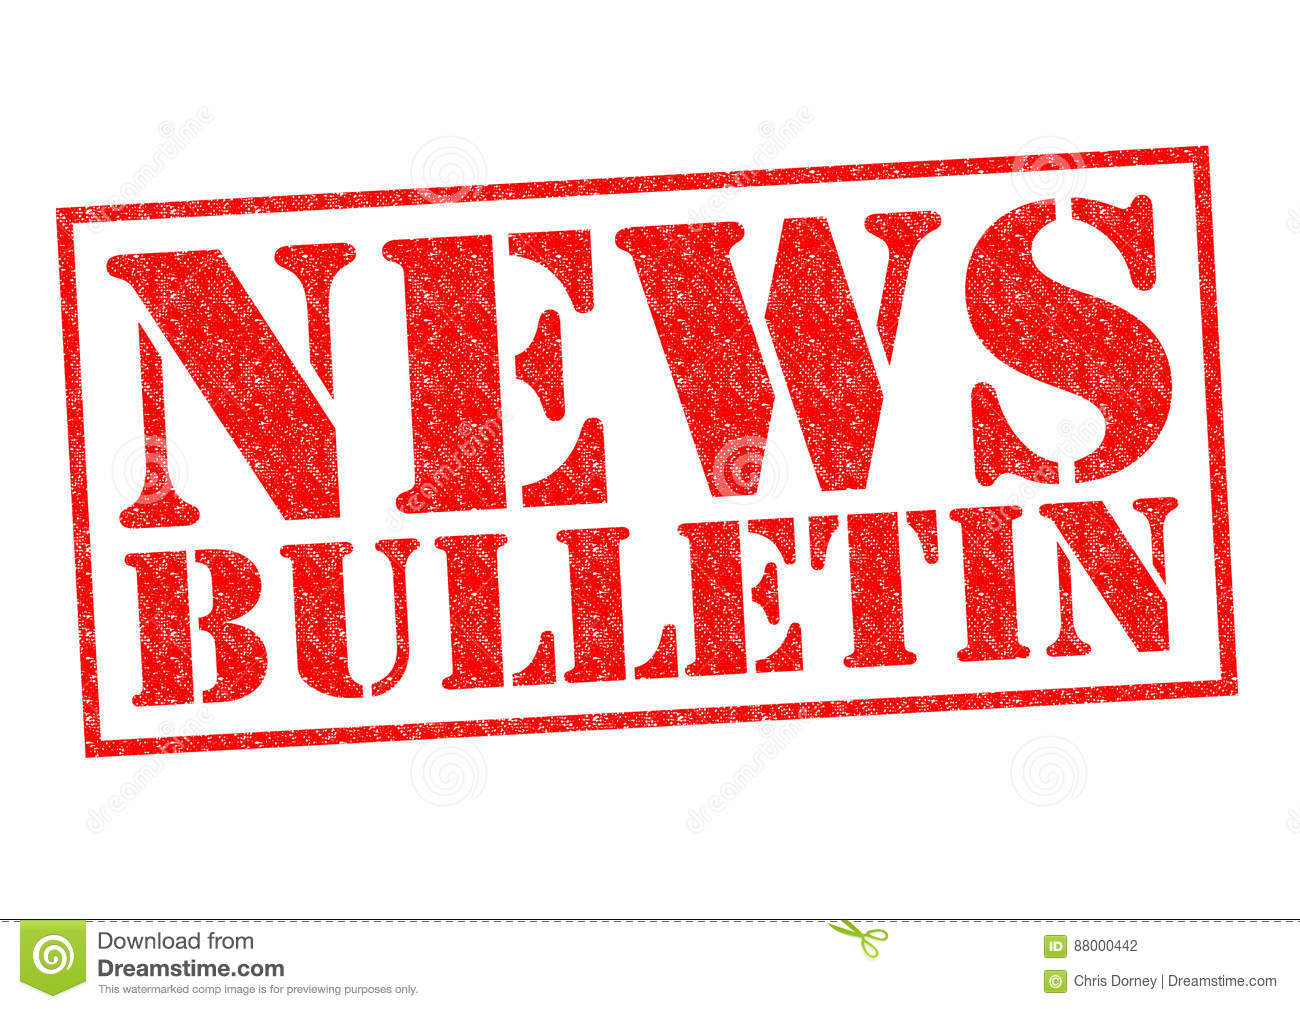 Genome web daily news bulletin headlines for dating. Genome web daily news bulletin headlines for dating.